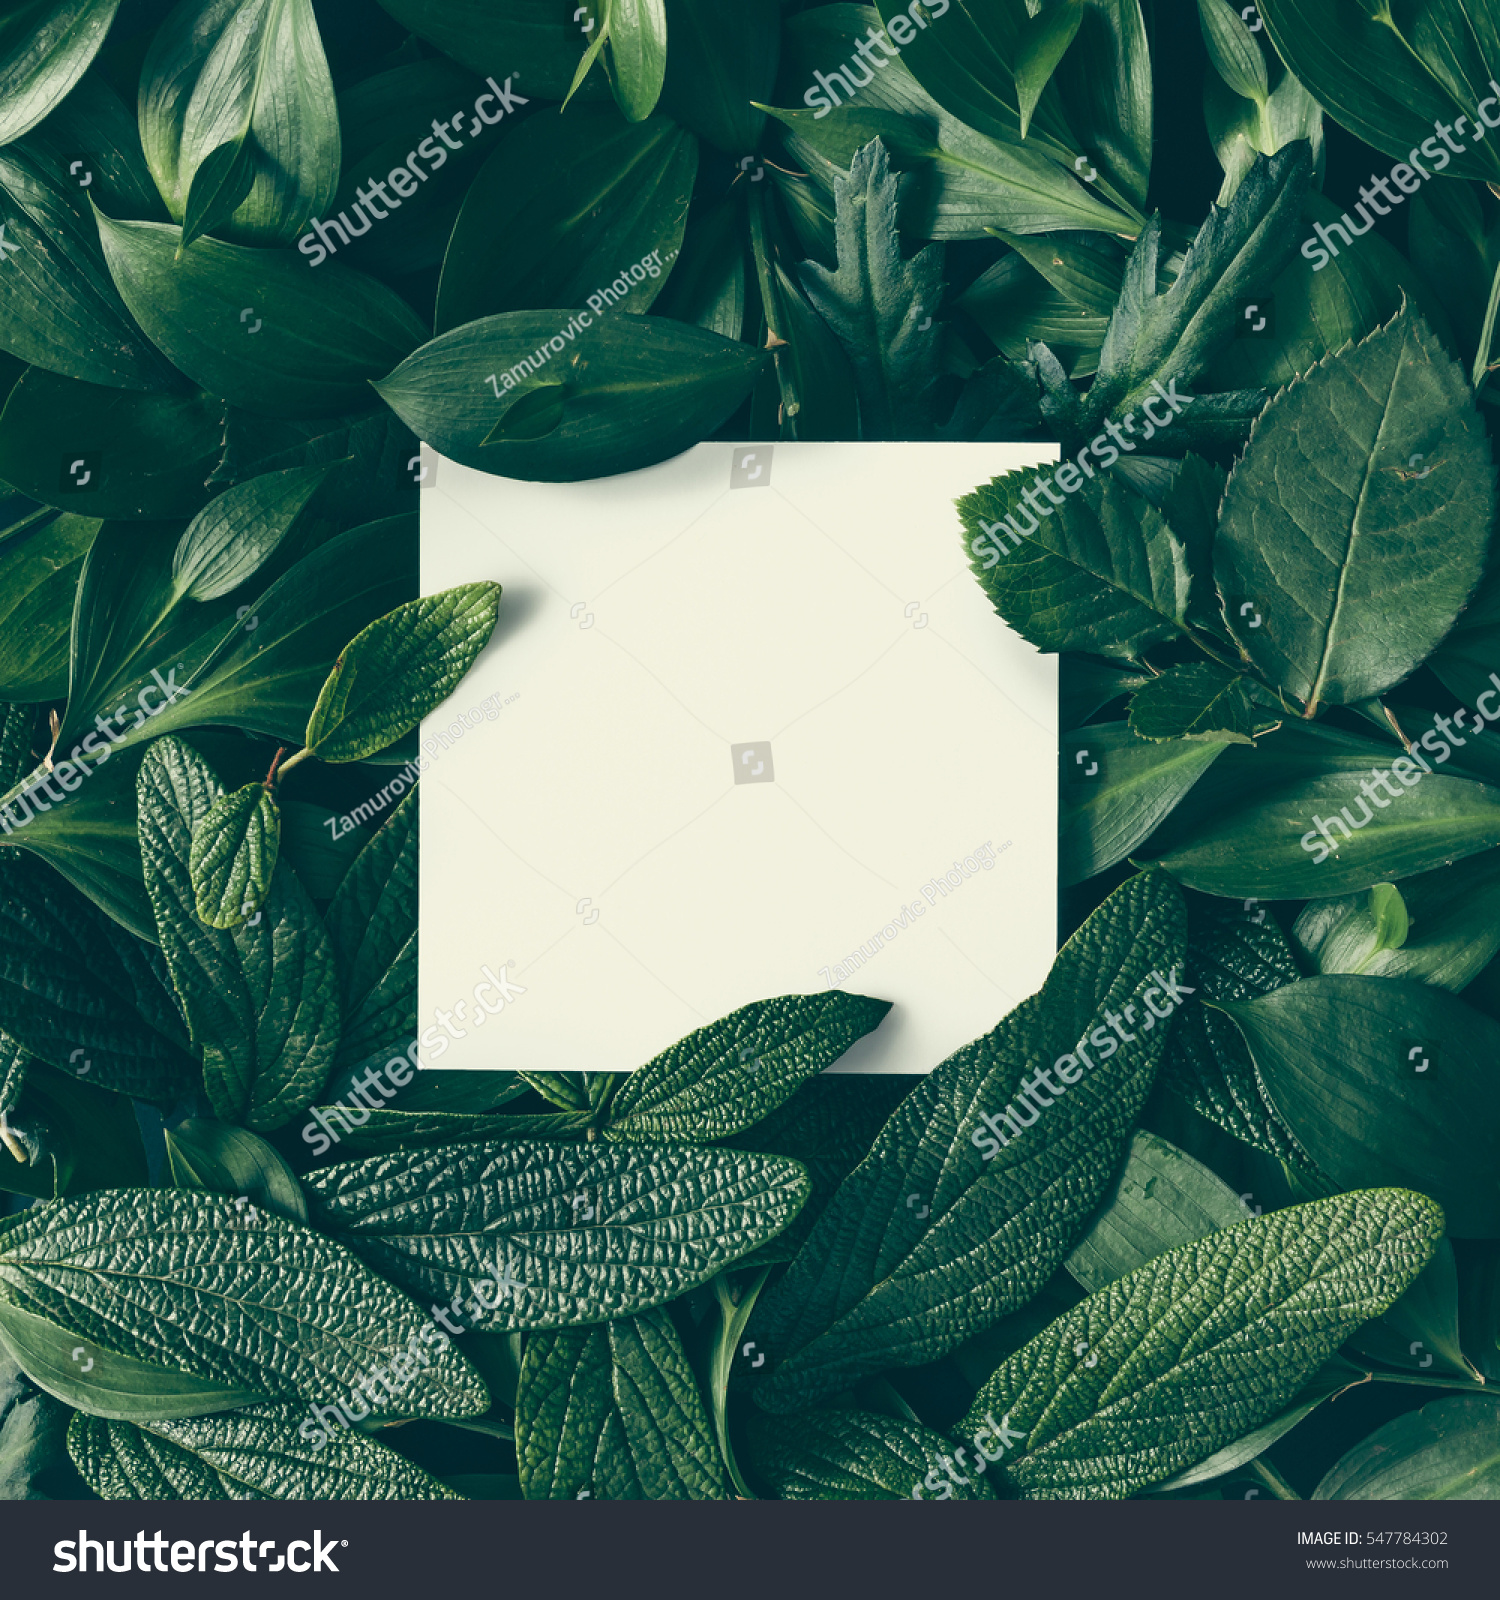 Creative layout made of flowers and leaves with paper card note. Flat lay. Nature concept #547784302 - 123PhotoFree.com